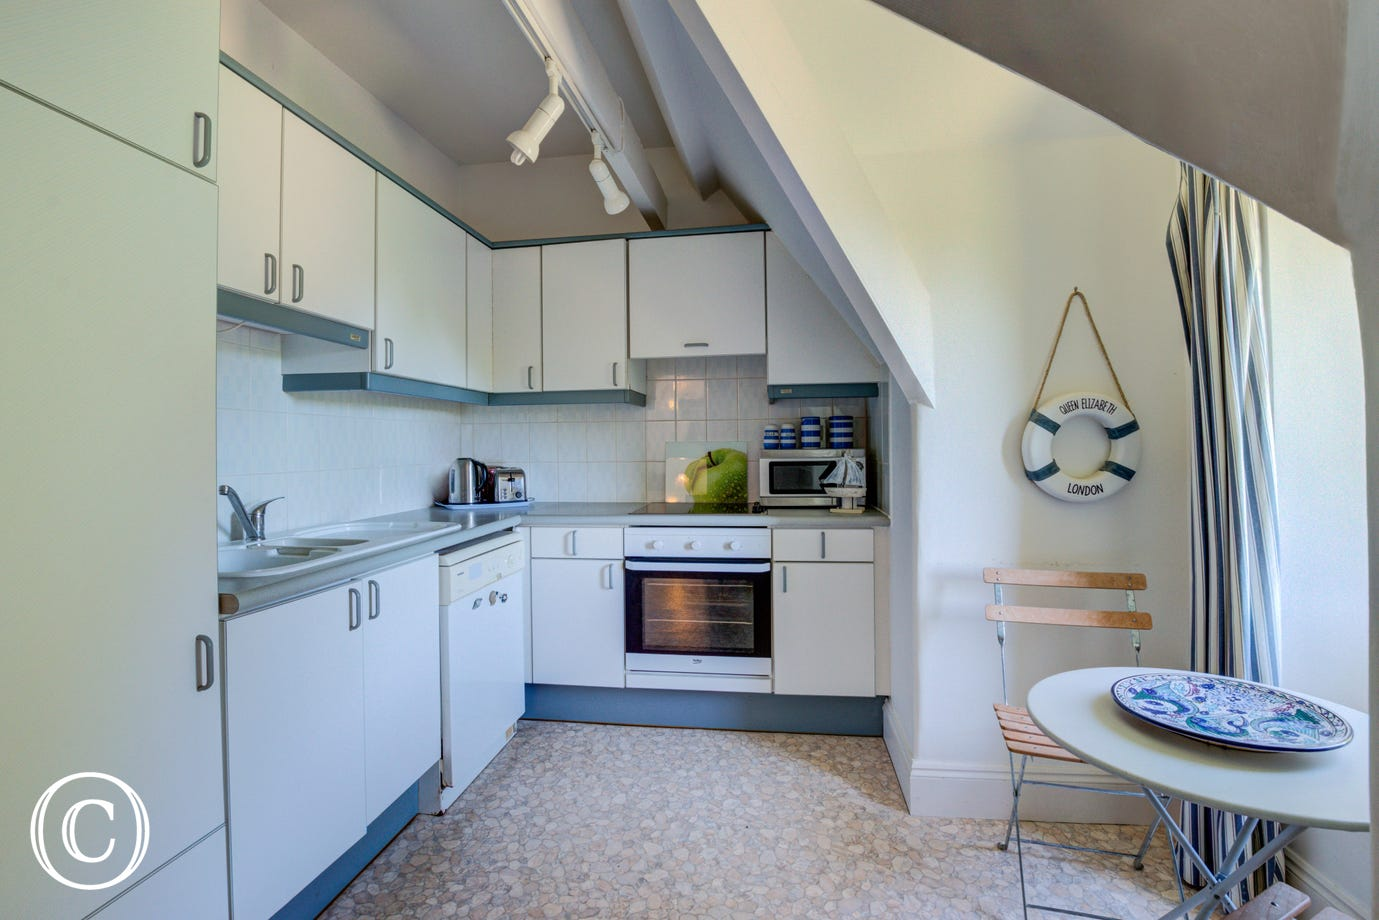 An open archway leads into the kitchen furnished with a range of base and wall units with a built under electric cooker and hob, larder fridge with ice compartment and a dishwasher.